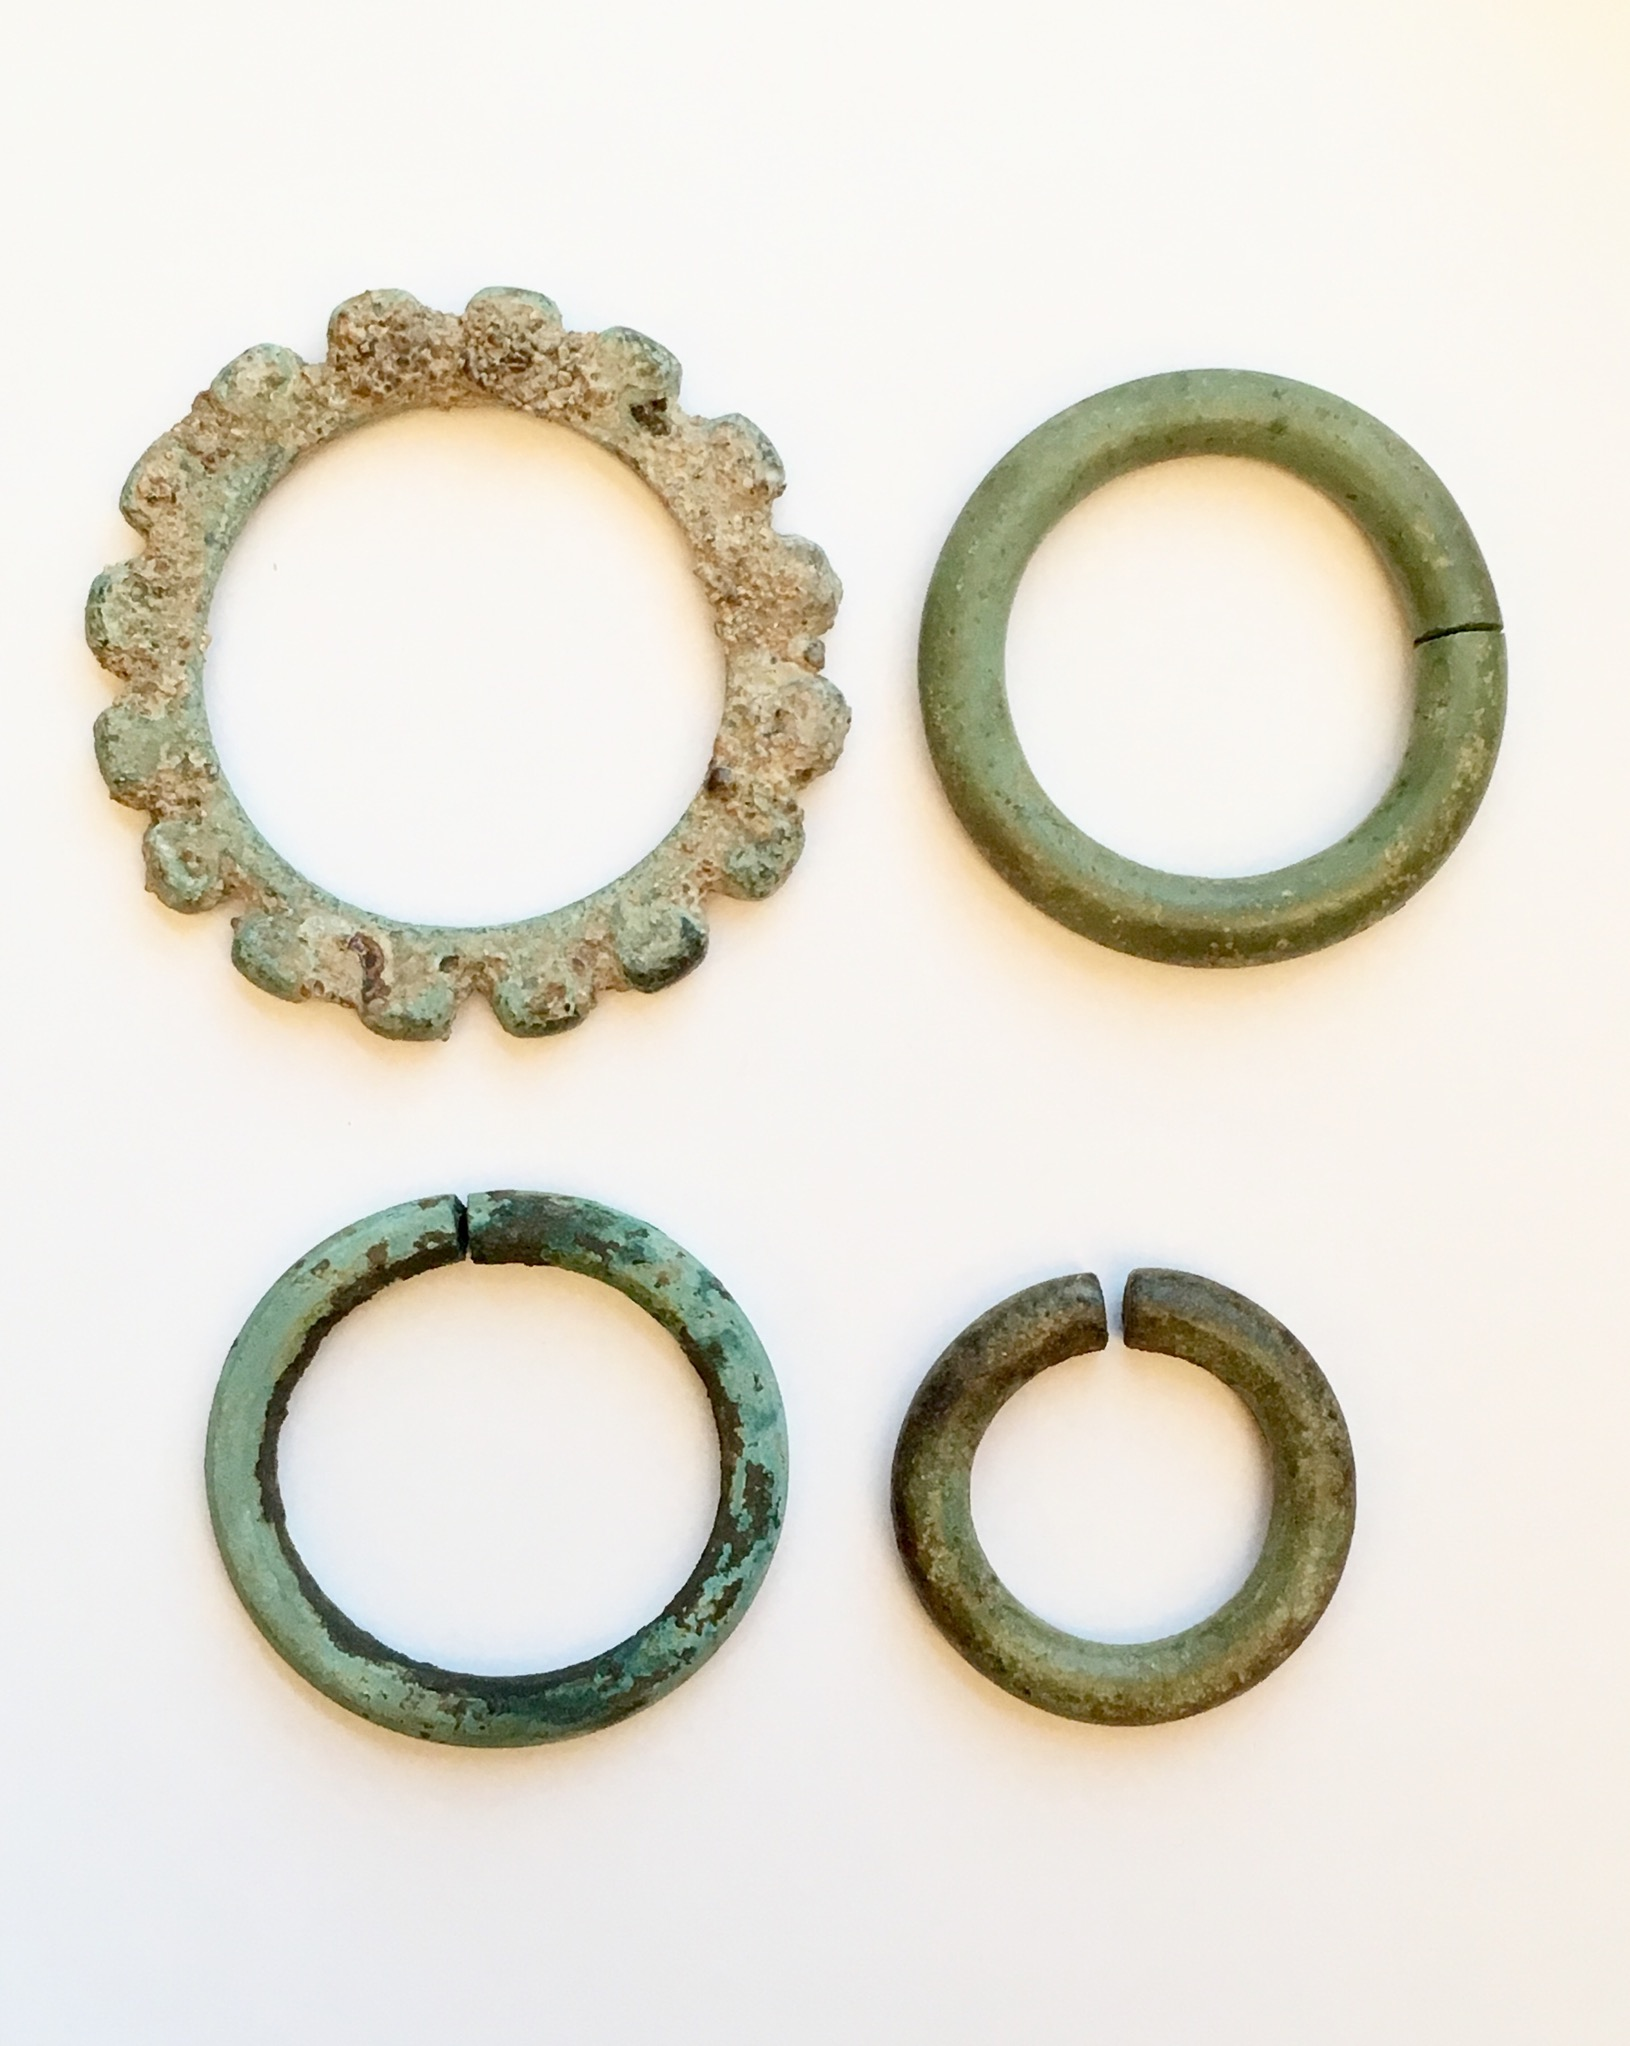 Set of four copper alloy bangles, Javanese